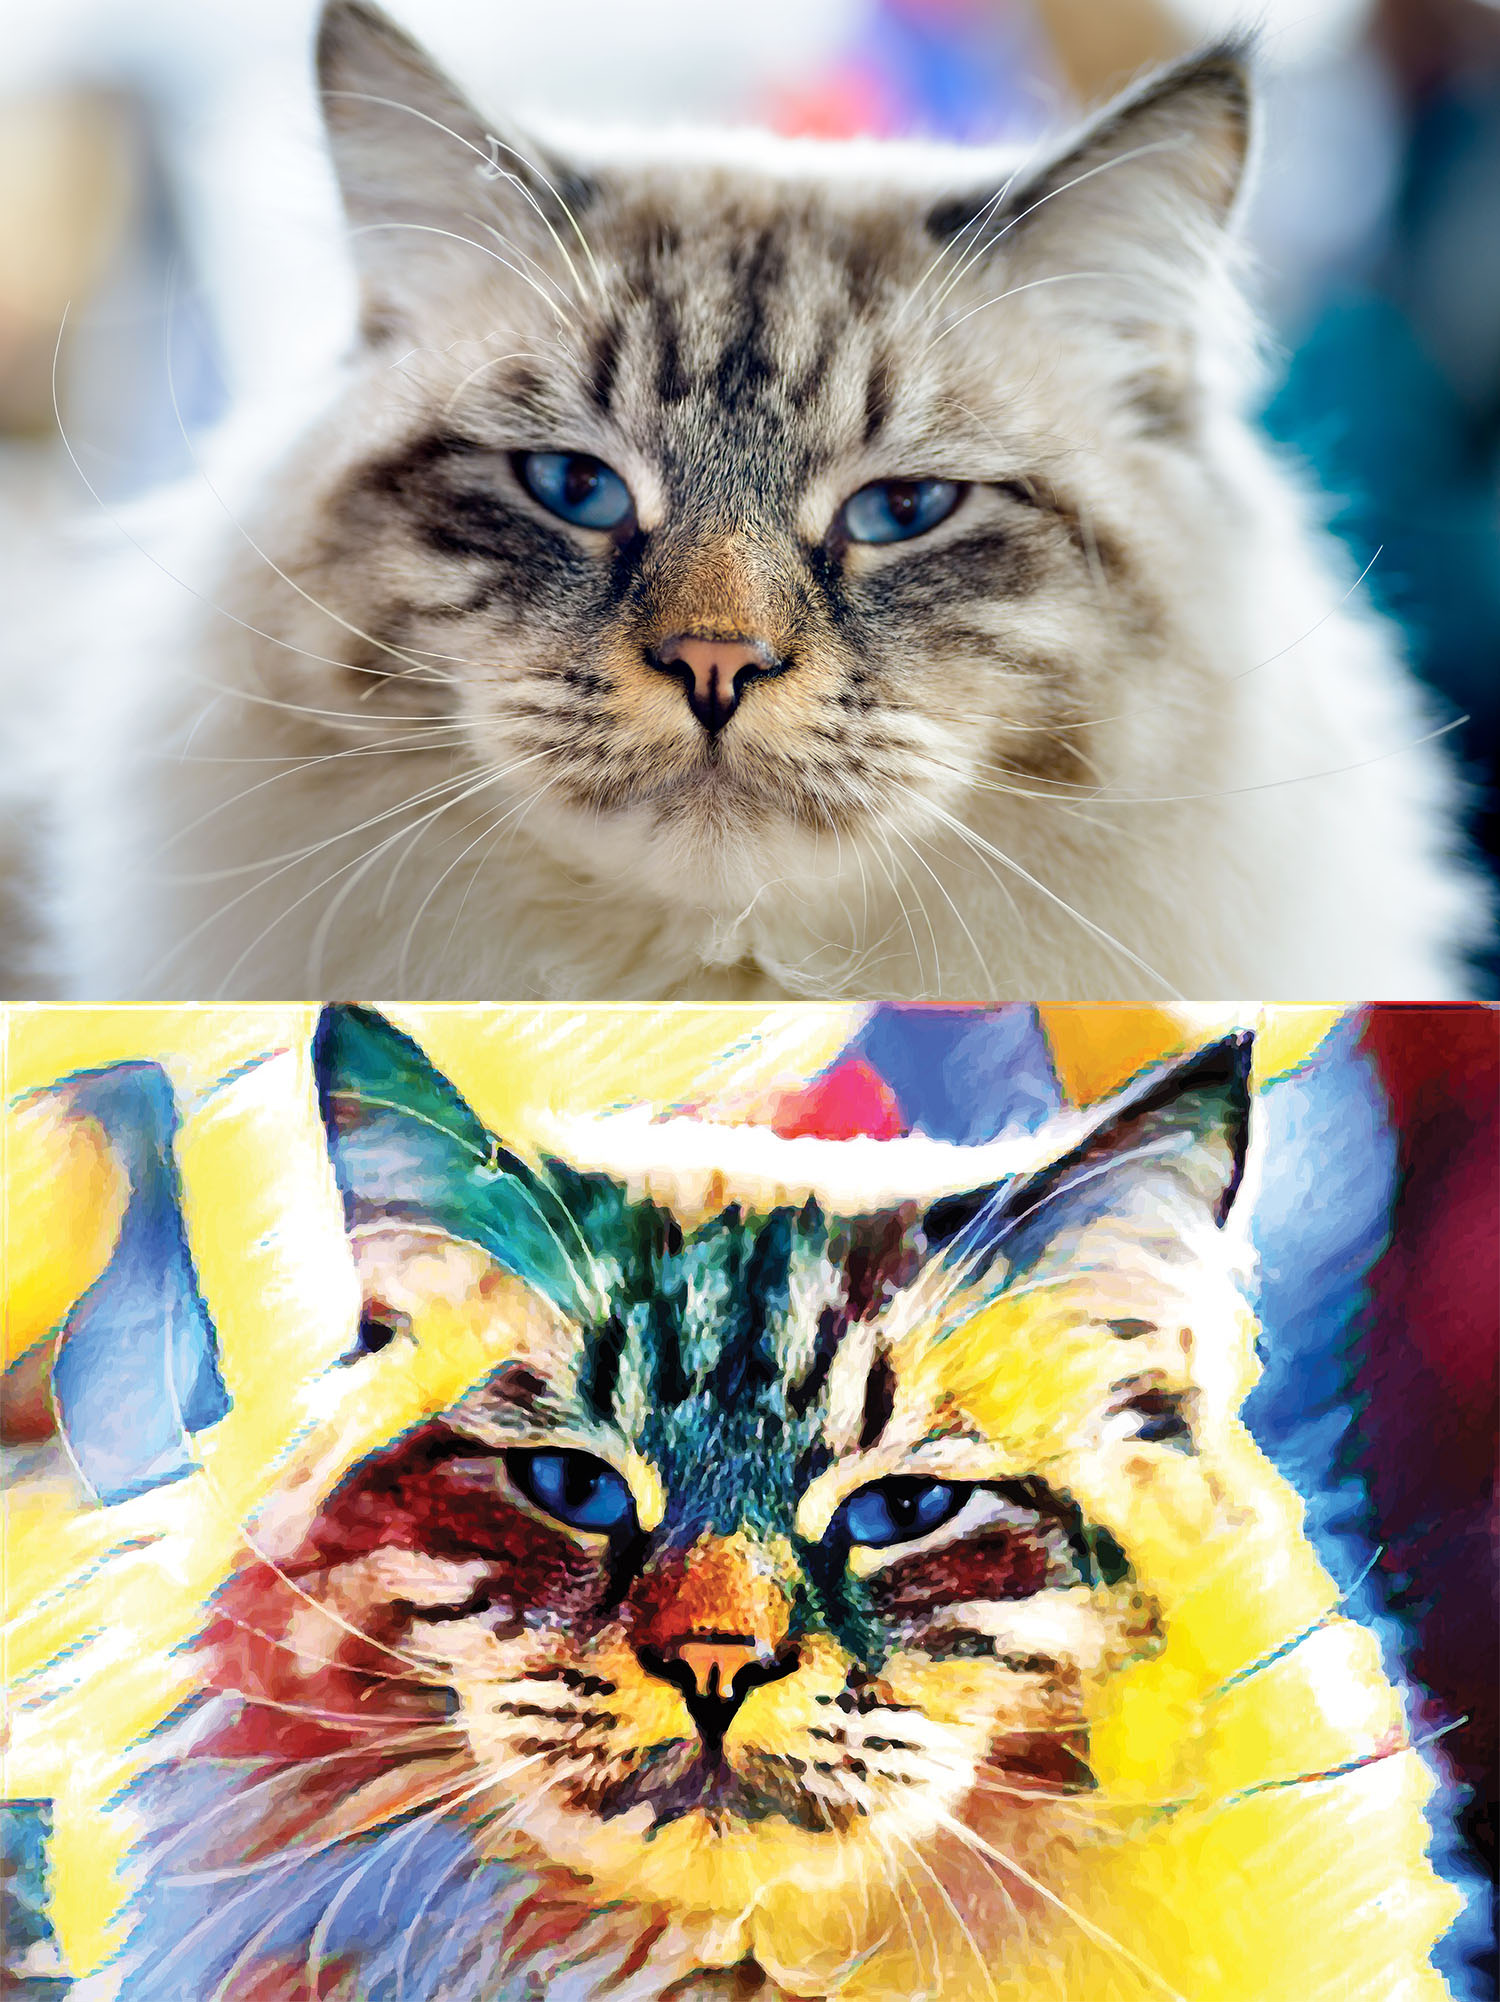 Before and after stylized image of a cat's face